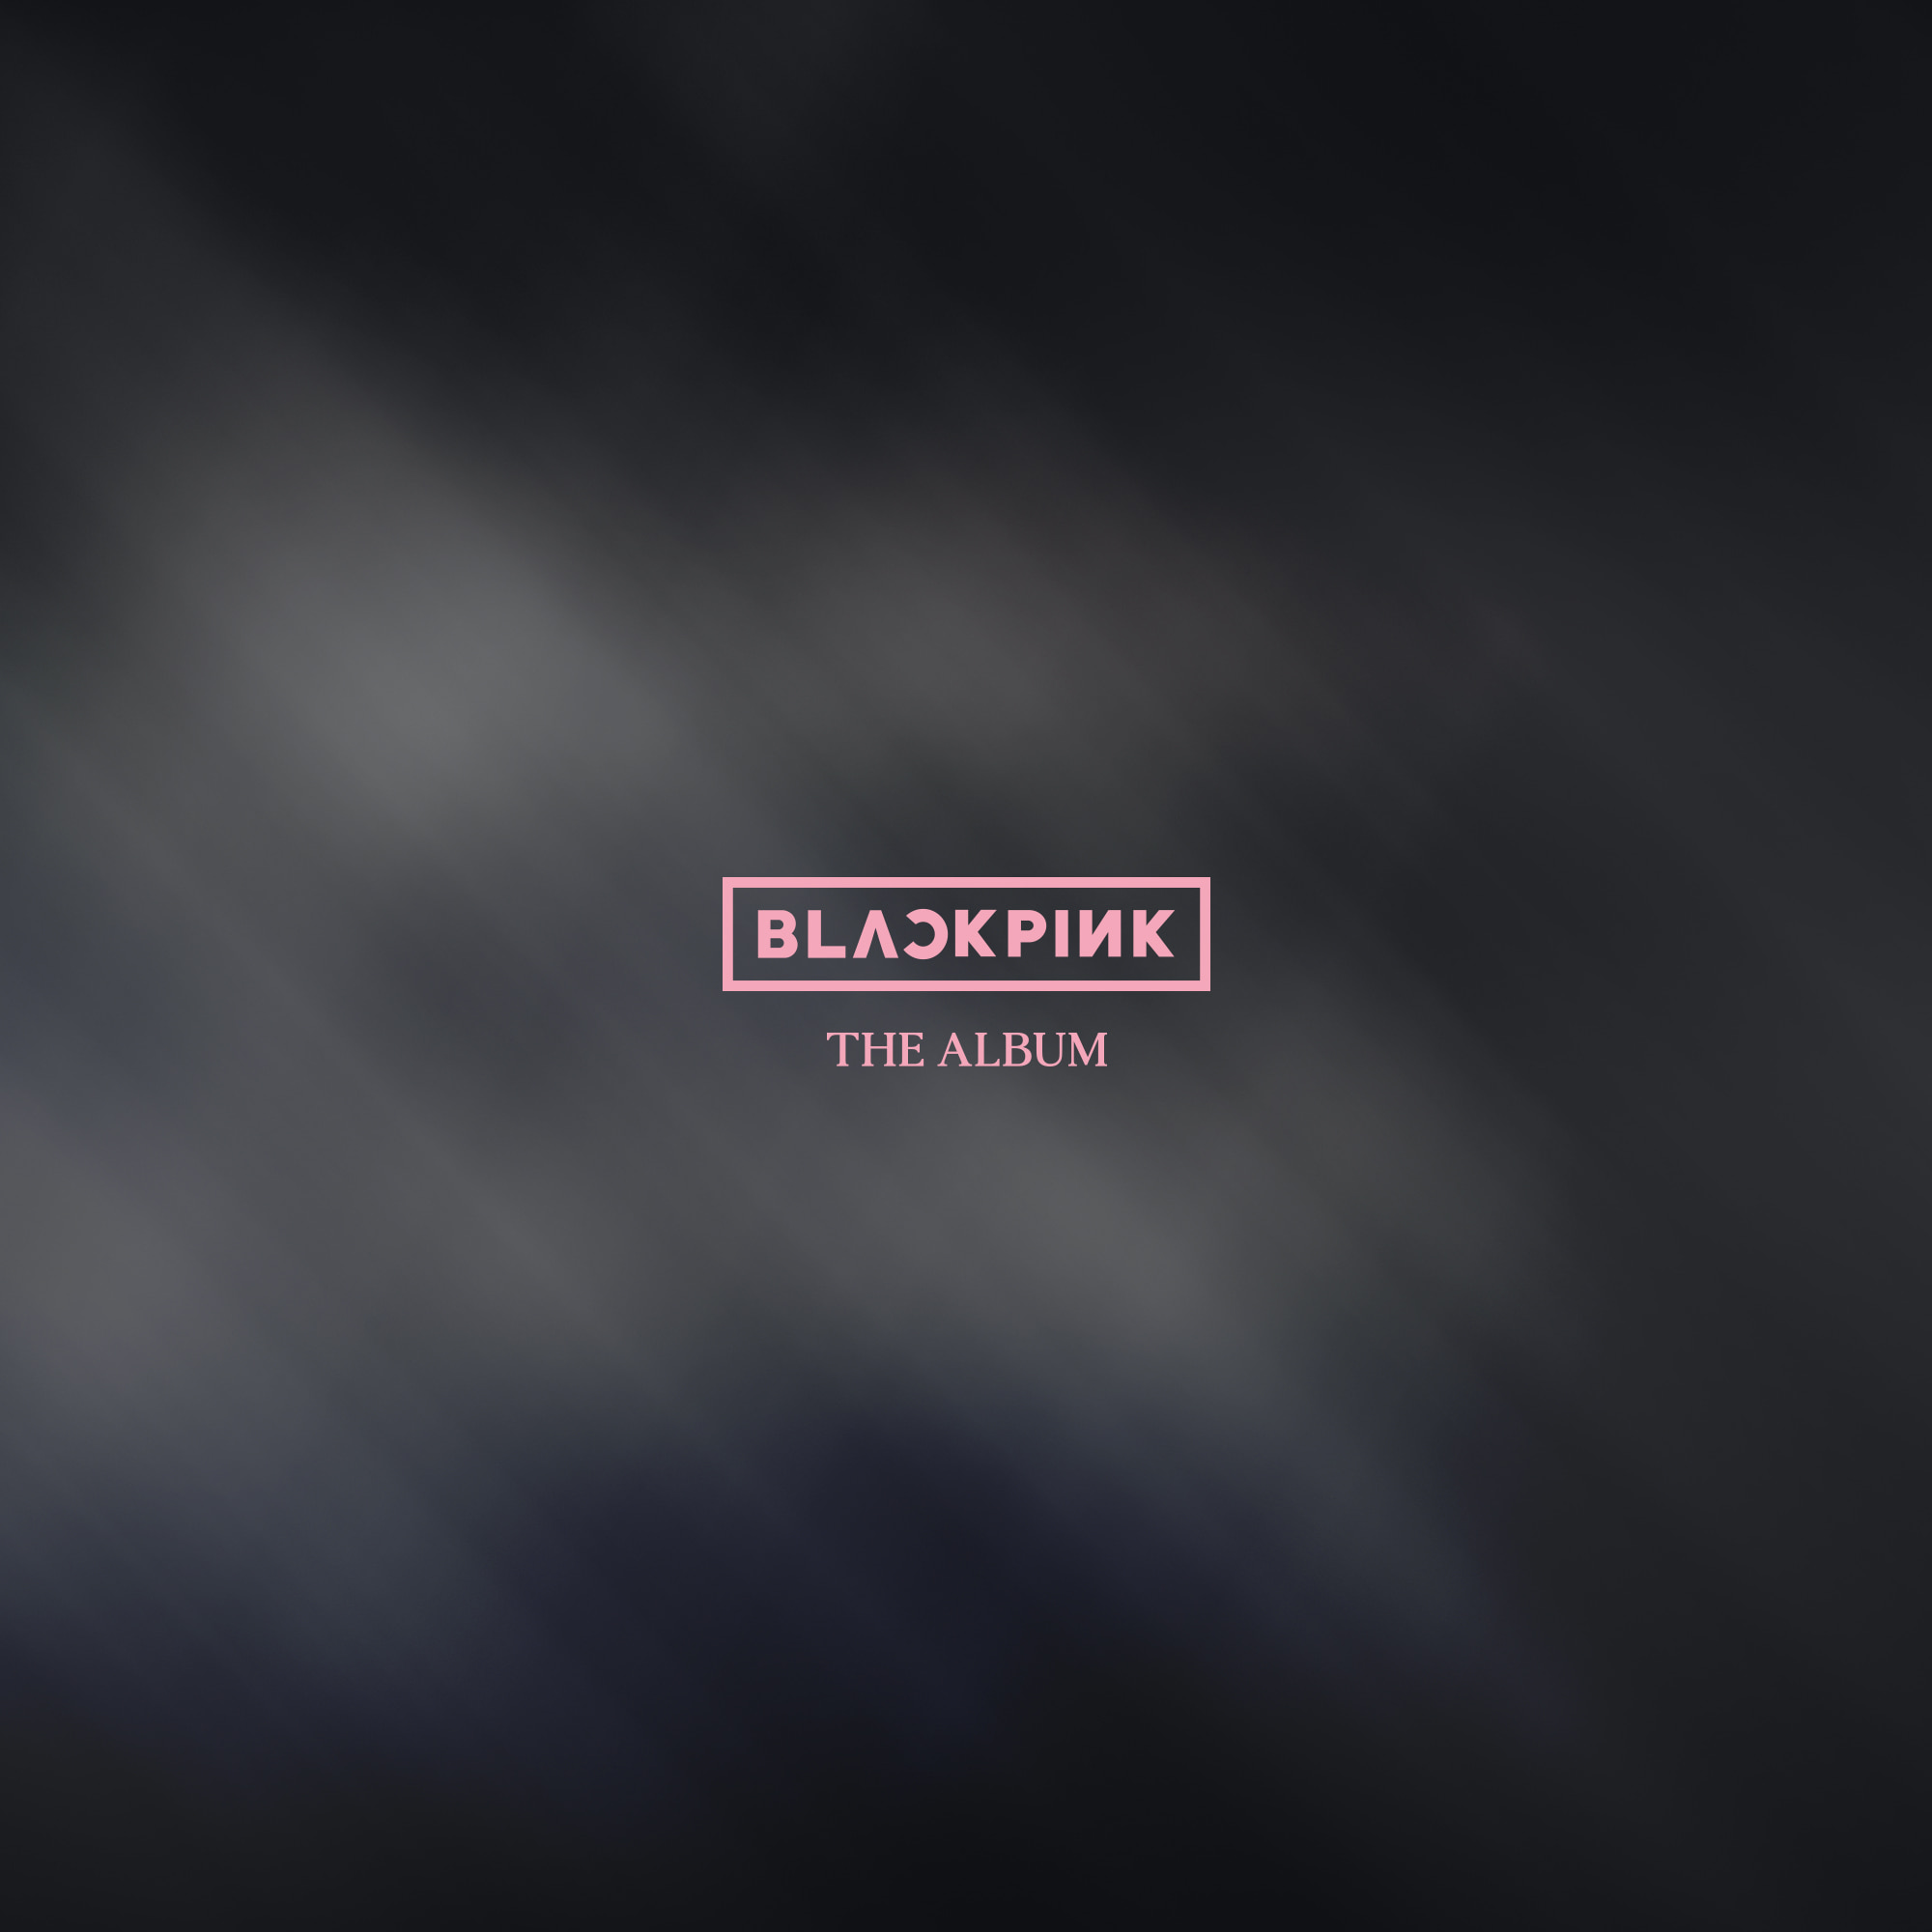 블랙핑크 (BLACKPINK) - 1st FULL ALBUM [THE ALBUM] [Ver.3]